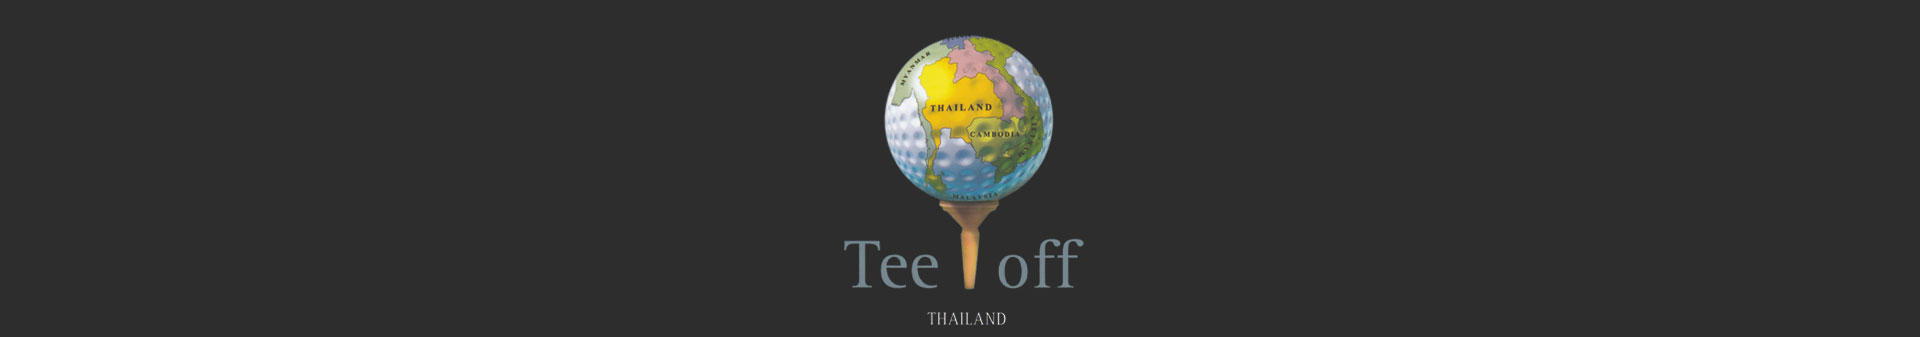 Tee off in Thailand